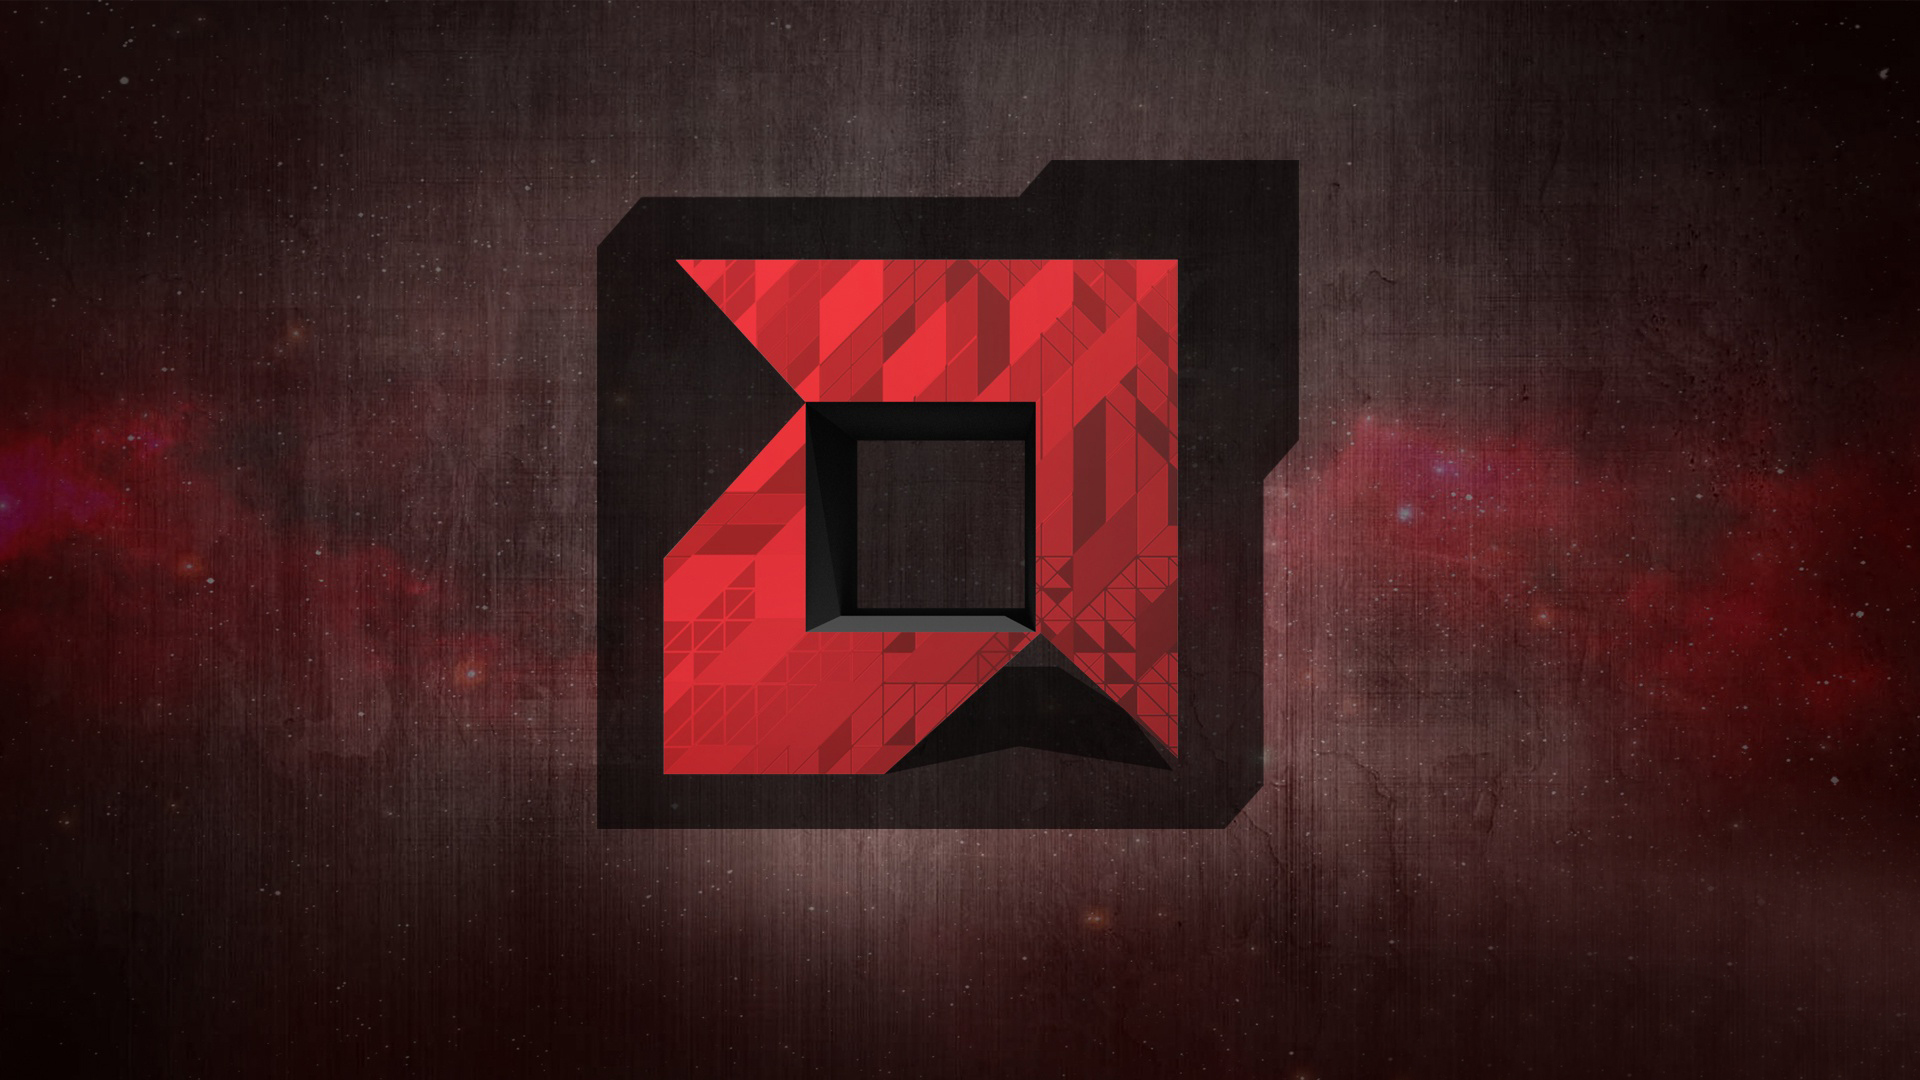 amd-wallpaper-1920x1080.jpg